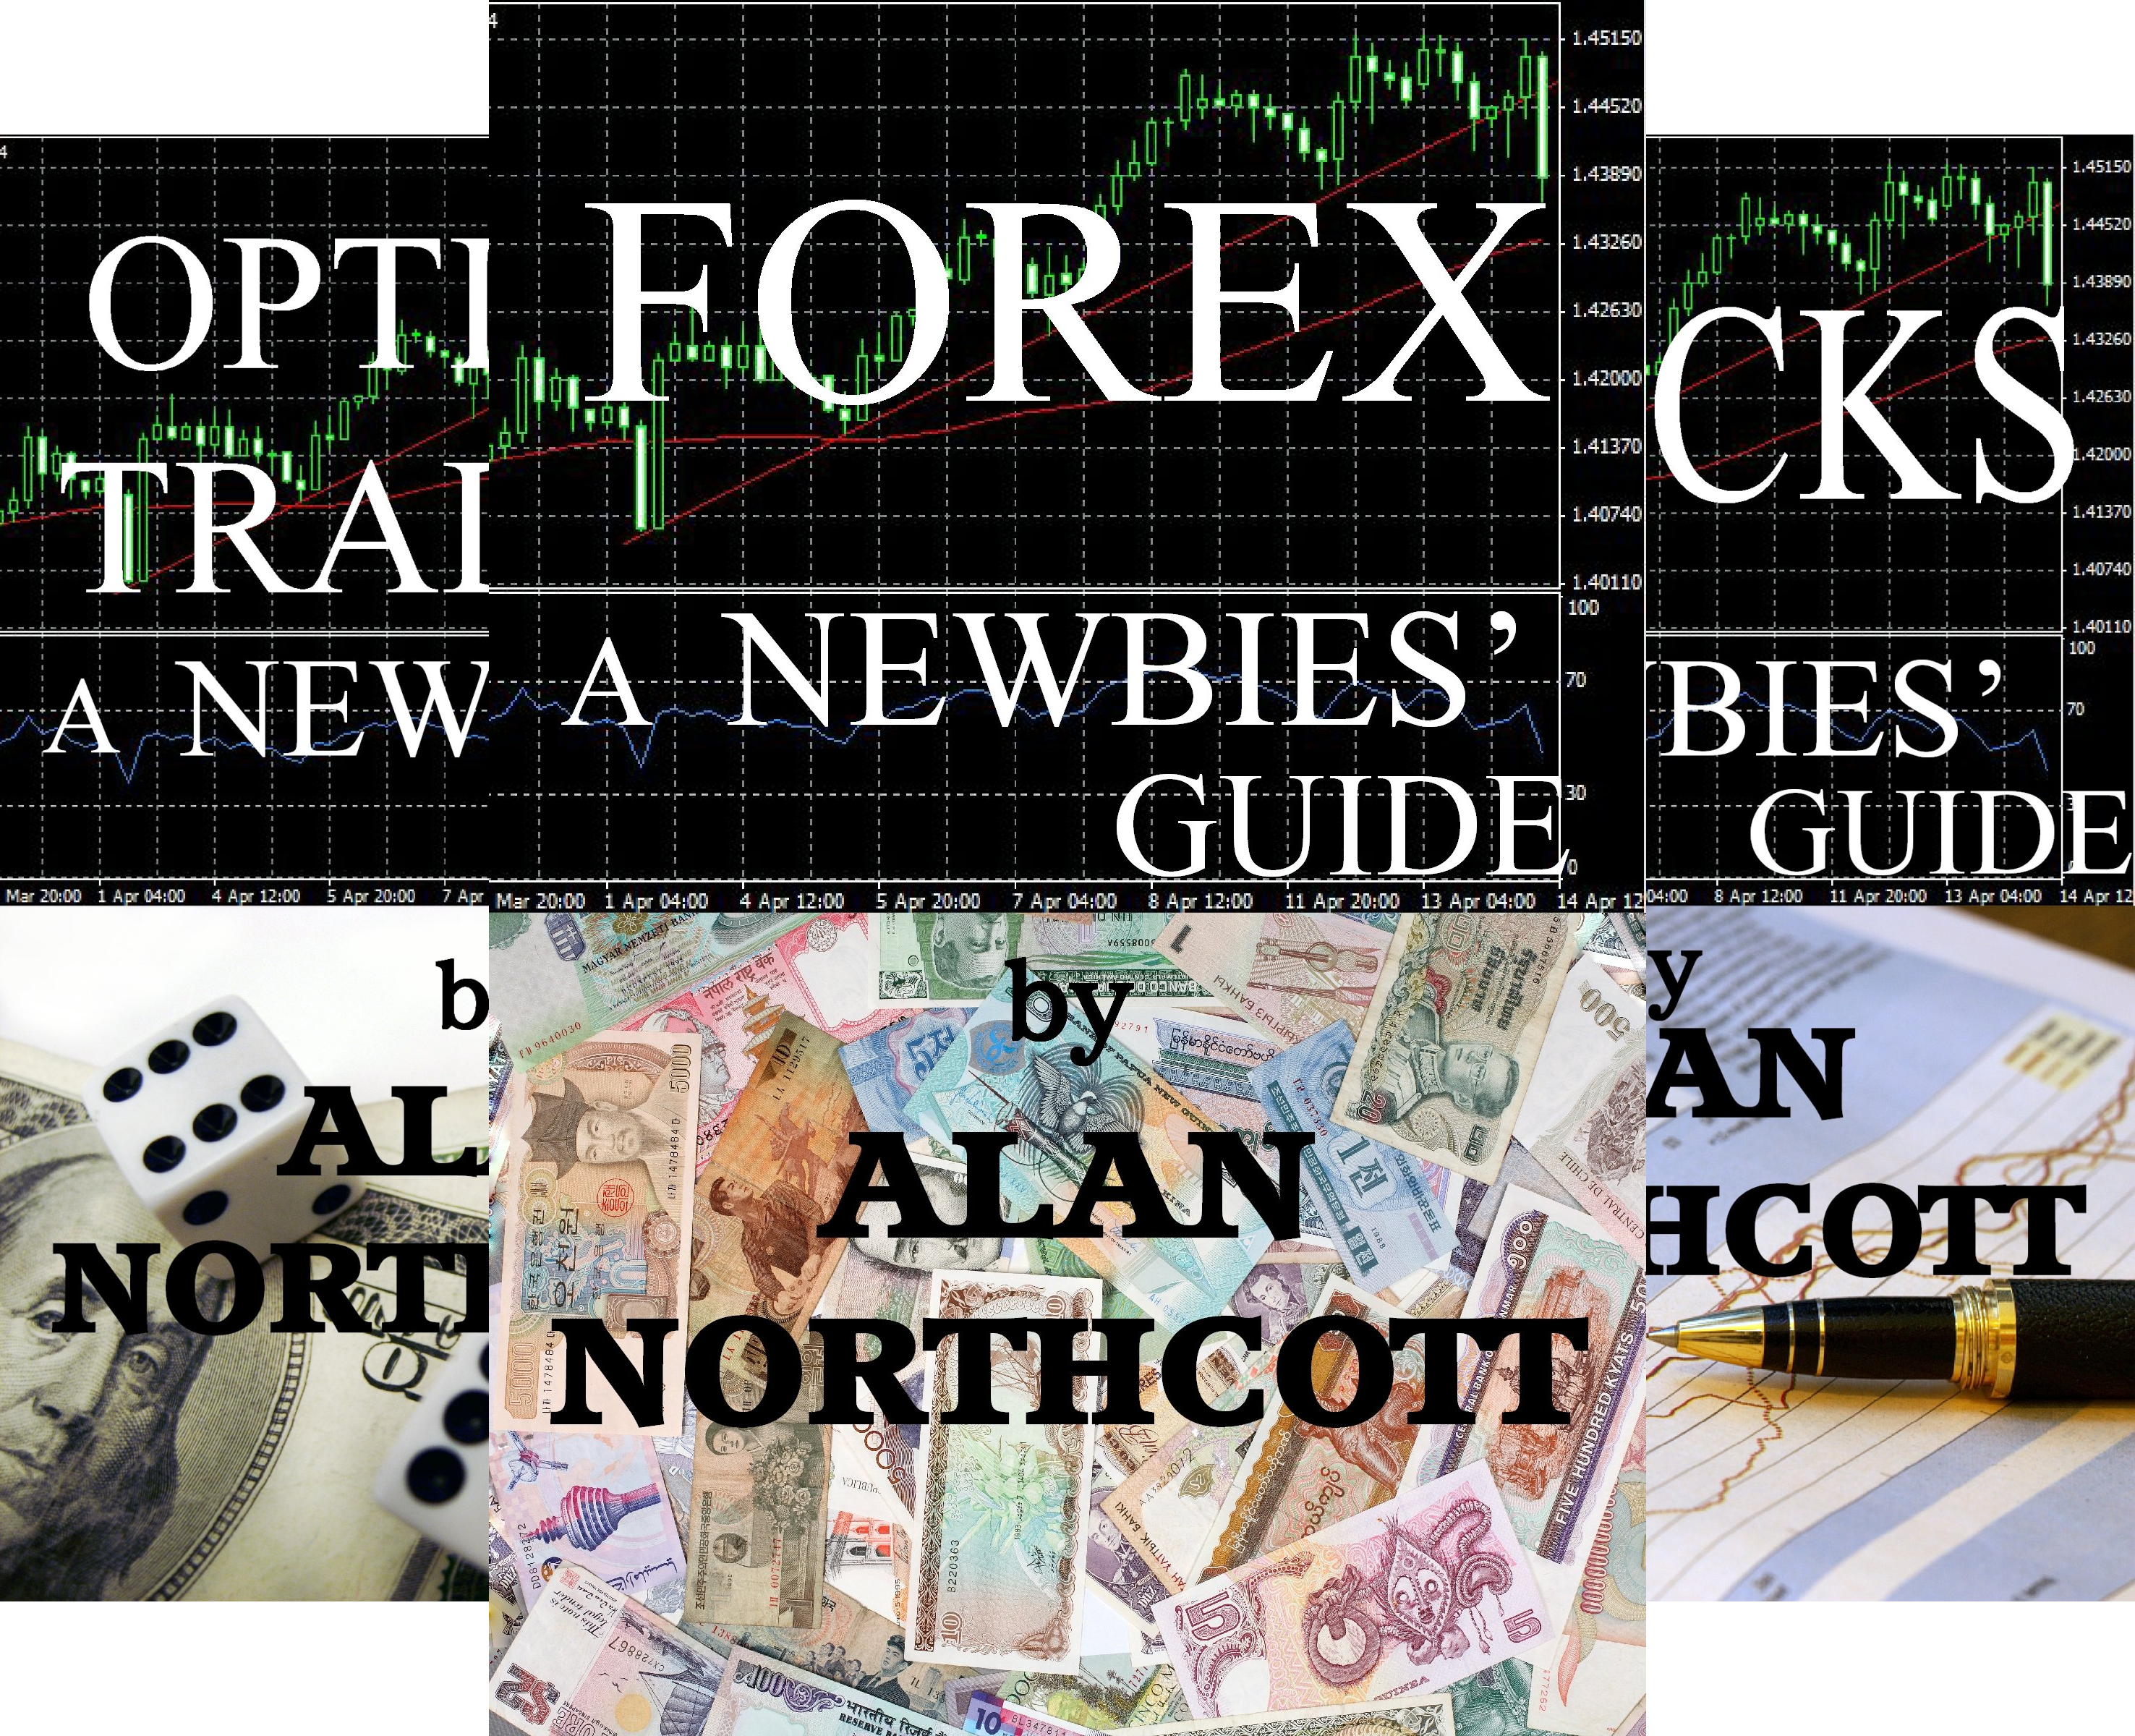 Newbies Guides to Finance (4 Book Series)